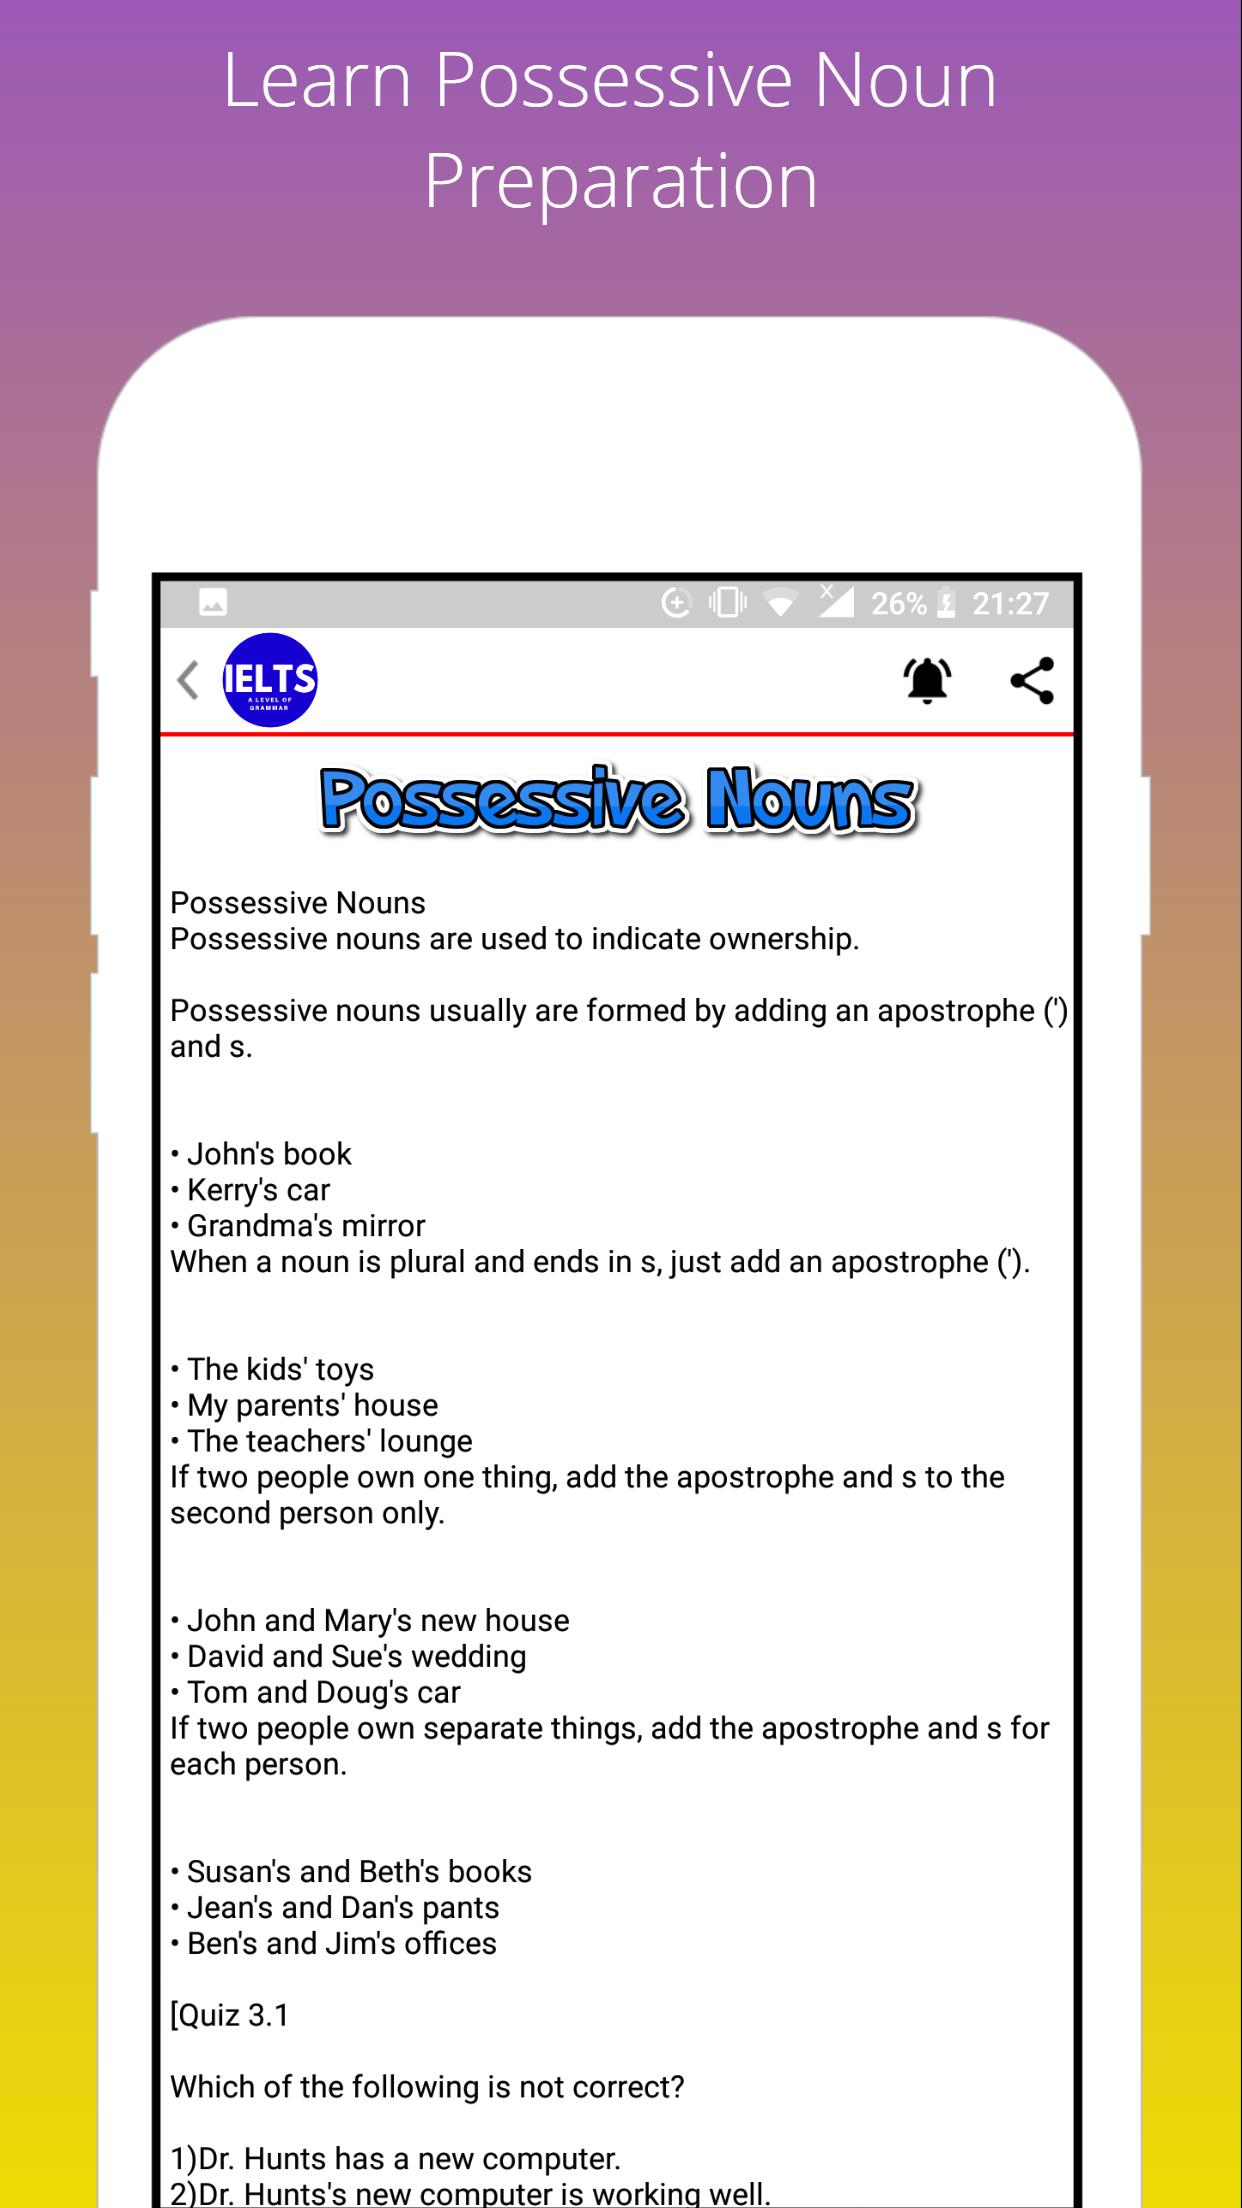 IELTS: A Level of English Grammar for Android - APK Download